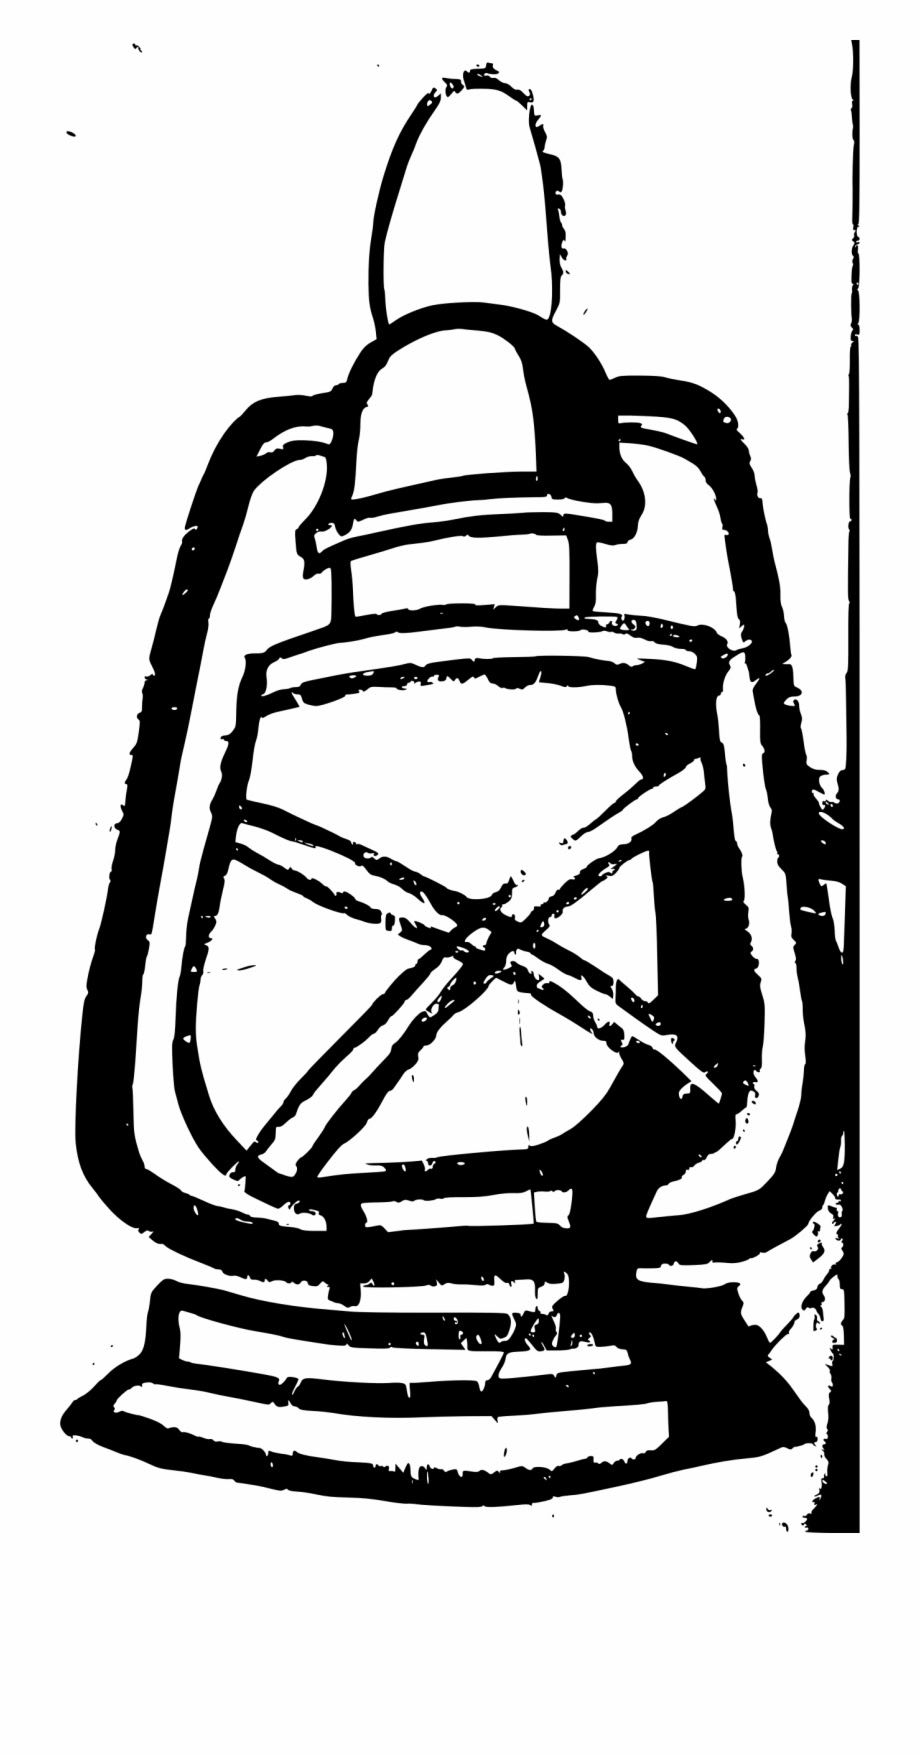 Free Lantern Clipart Black And White Download Free Lantern Clipart Black And White Png Images Free Cliparts On Clipart Library